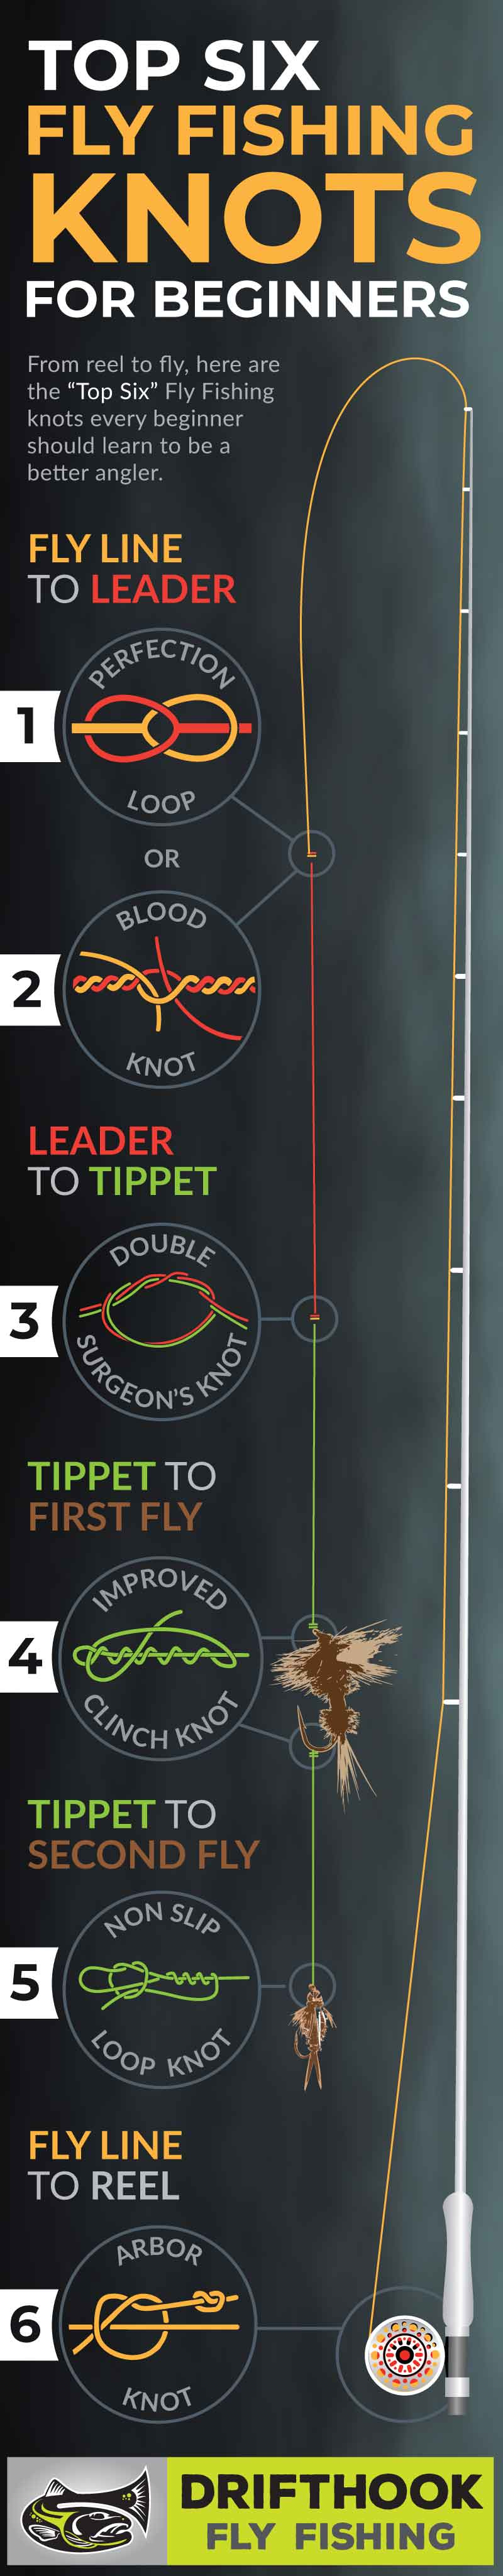 Top Six Fly Fishing Knots for Beginners